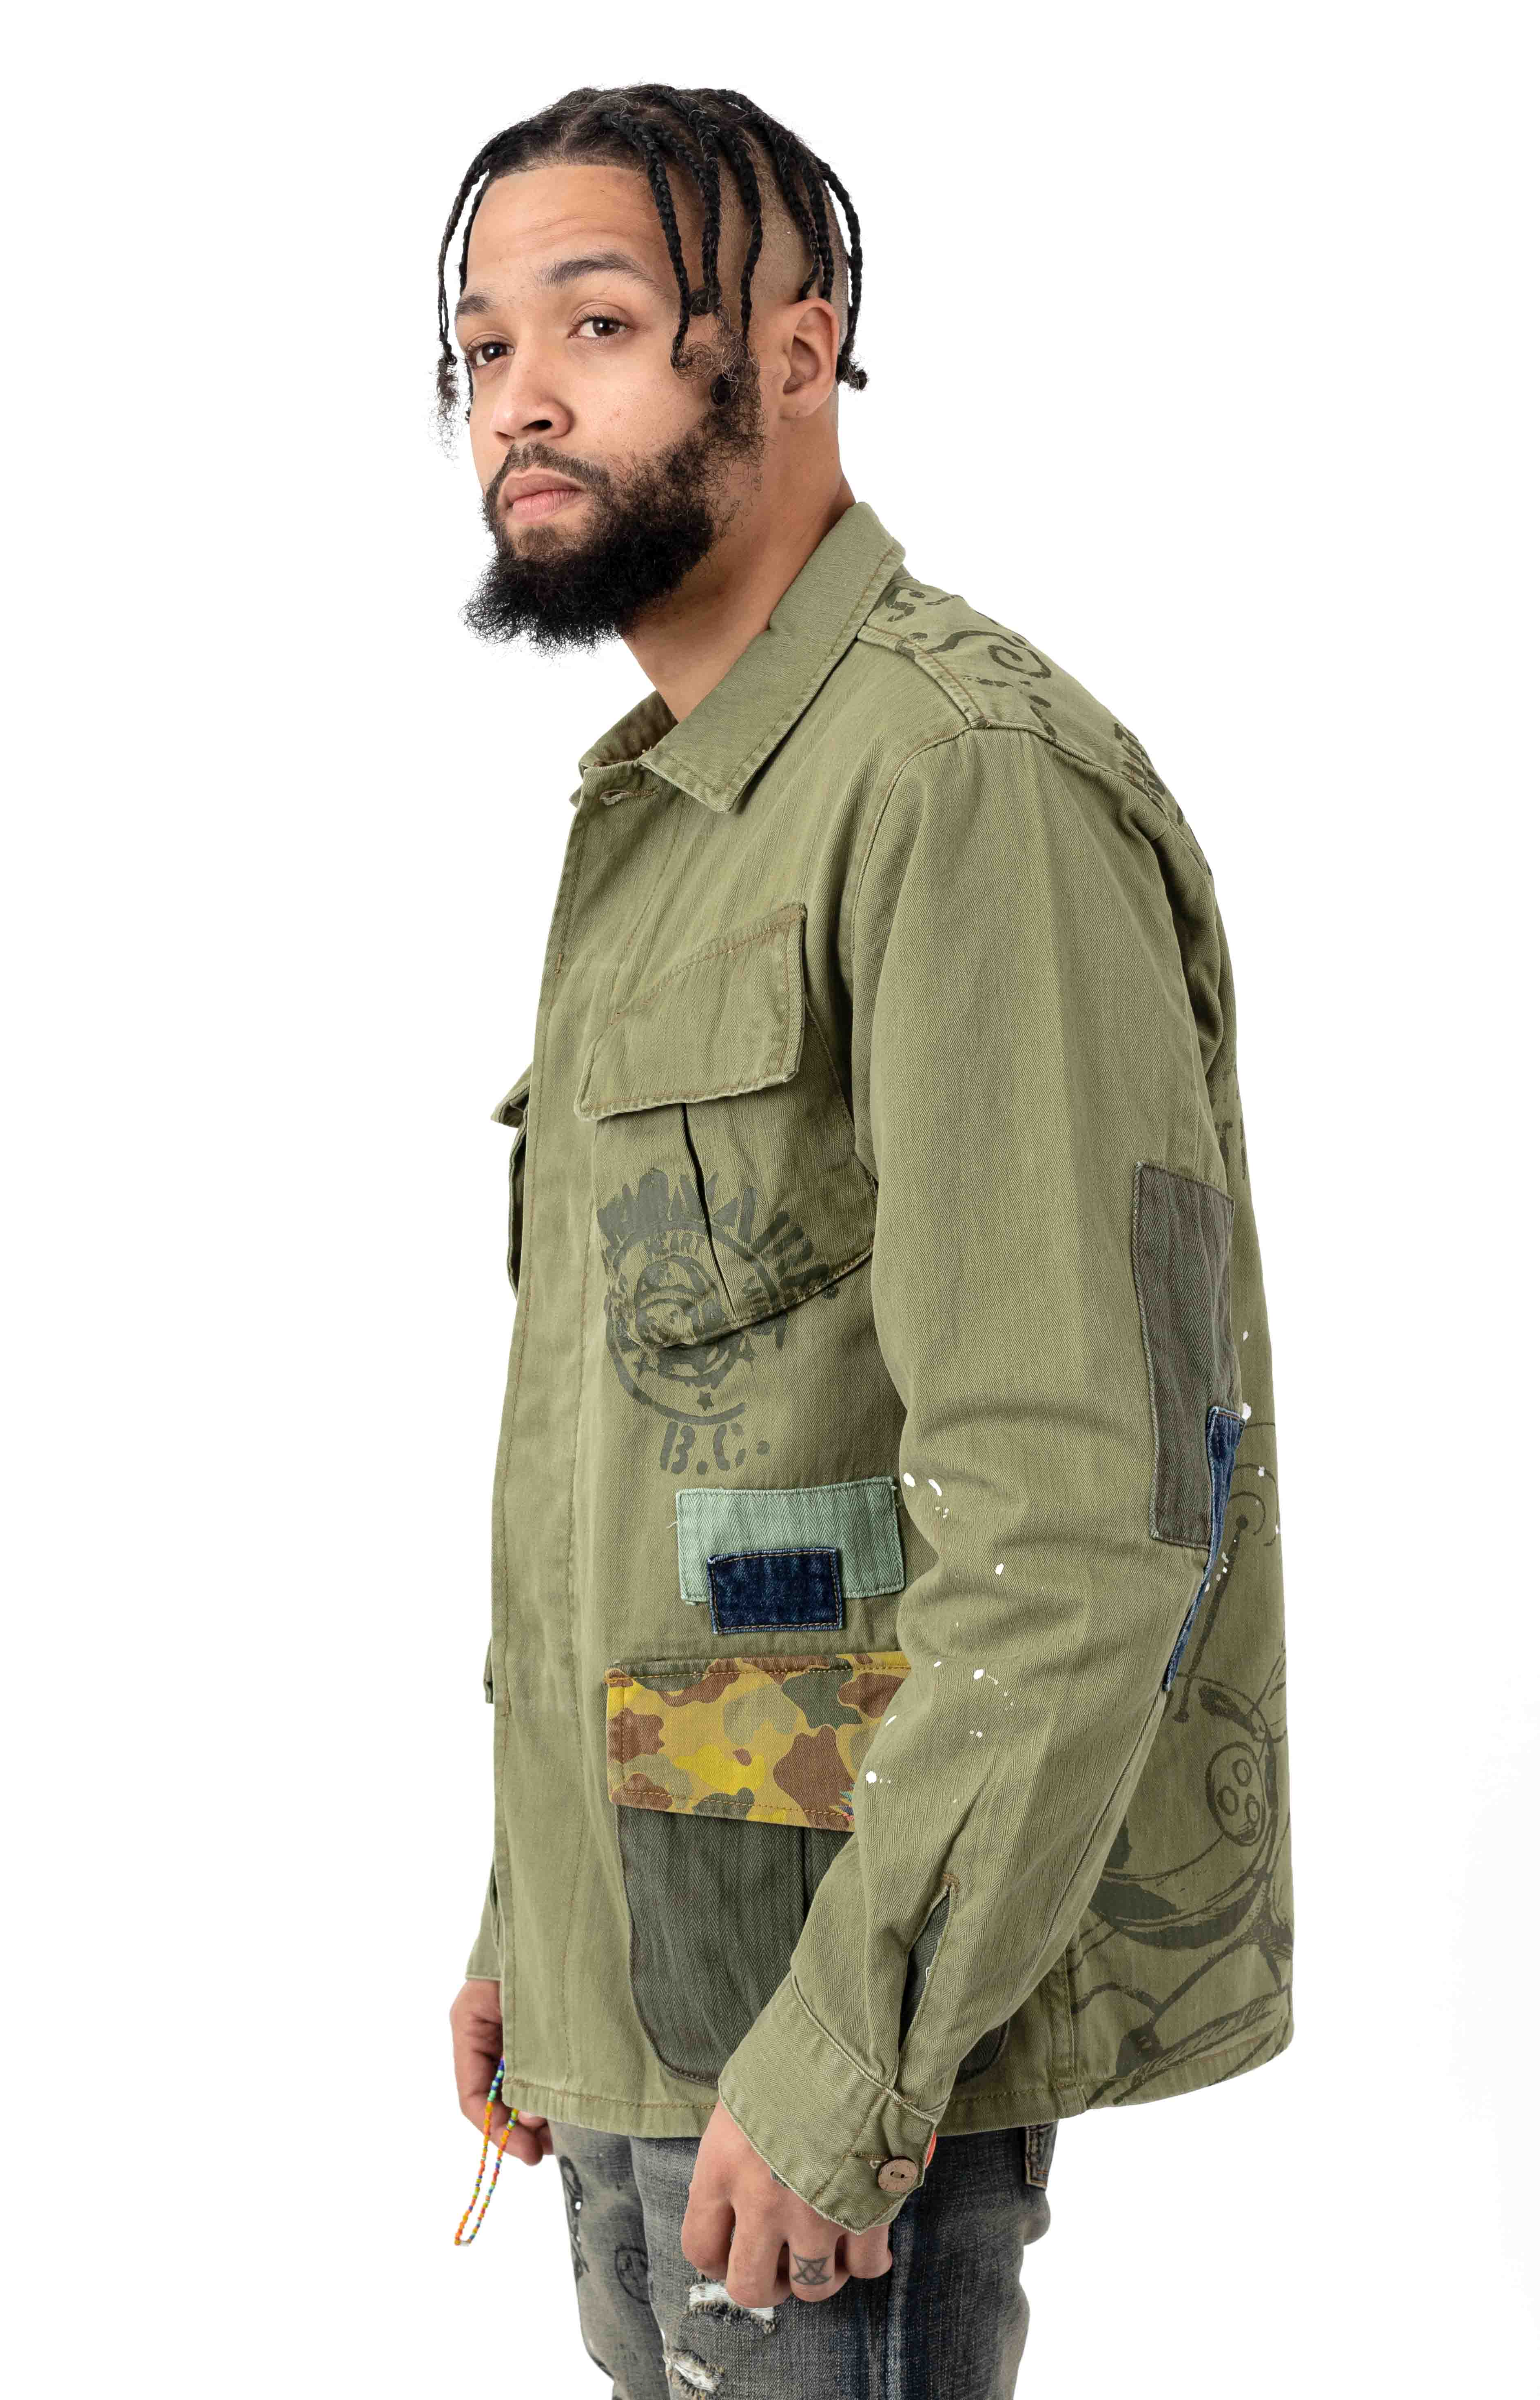 BB Fatigued Jacket - Loden Green  2